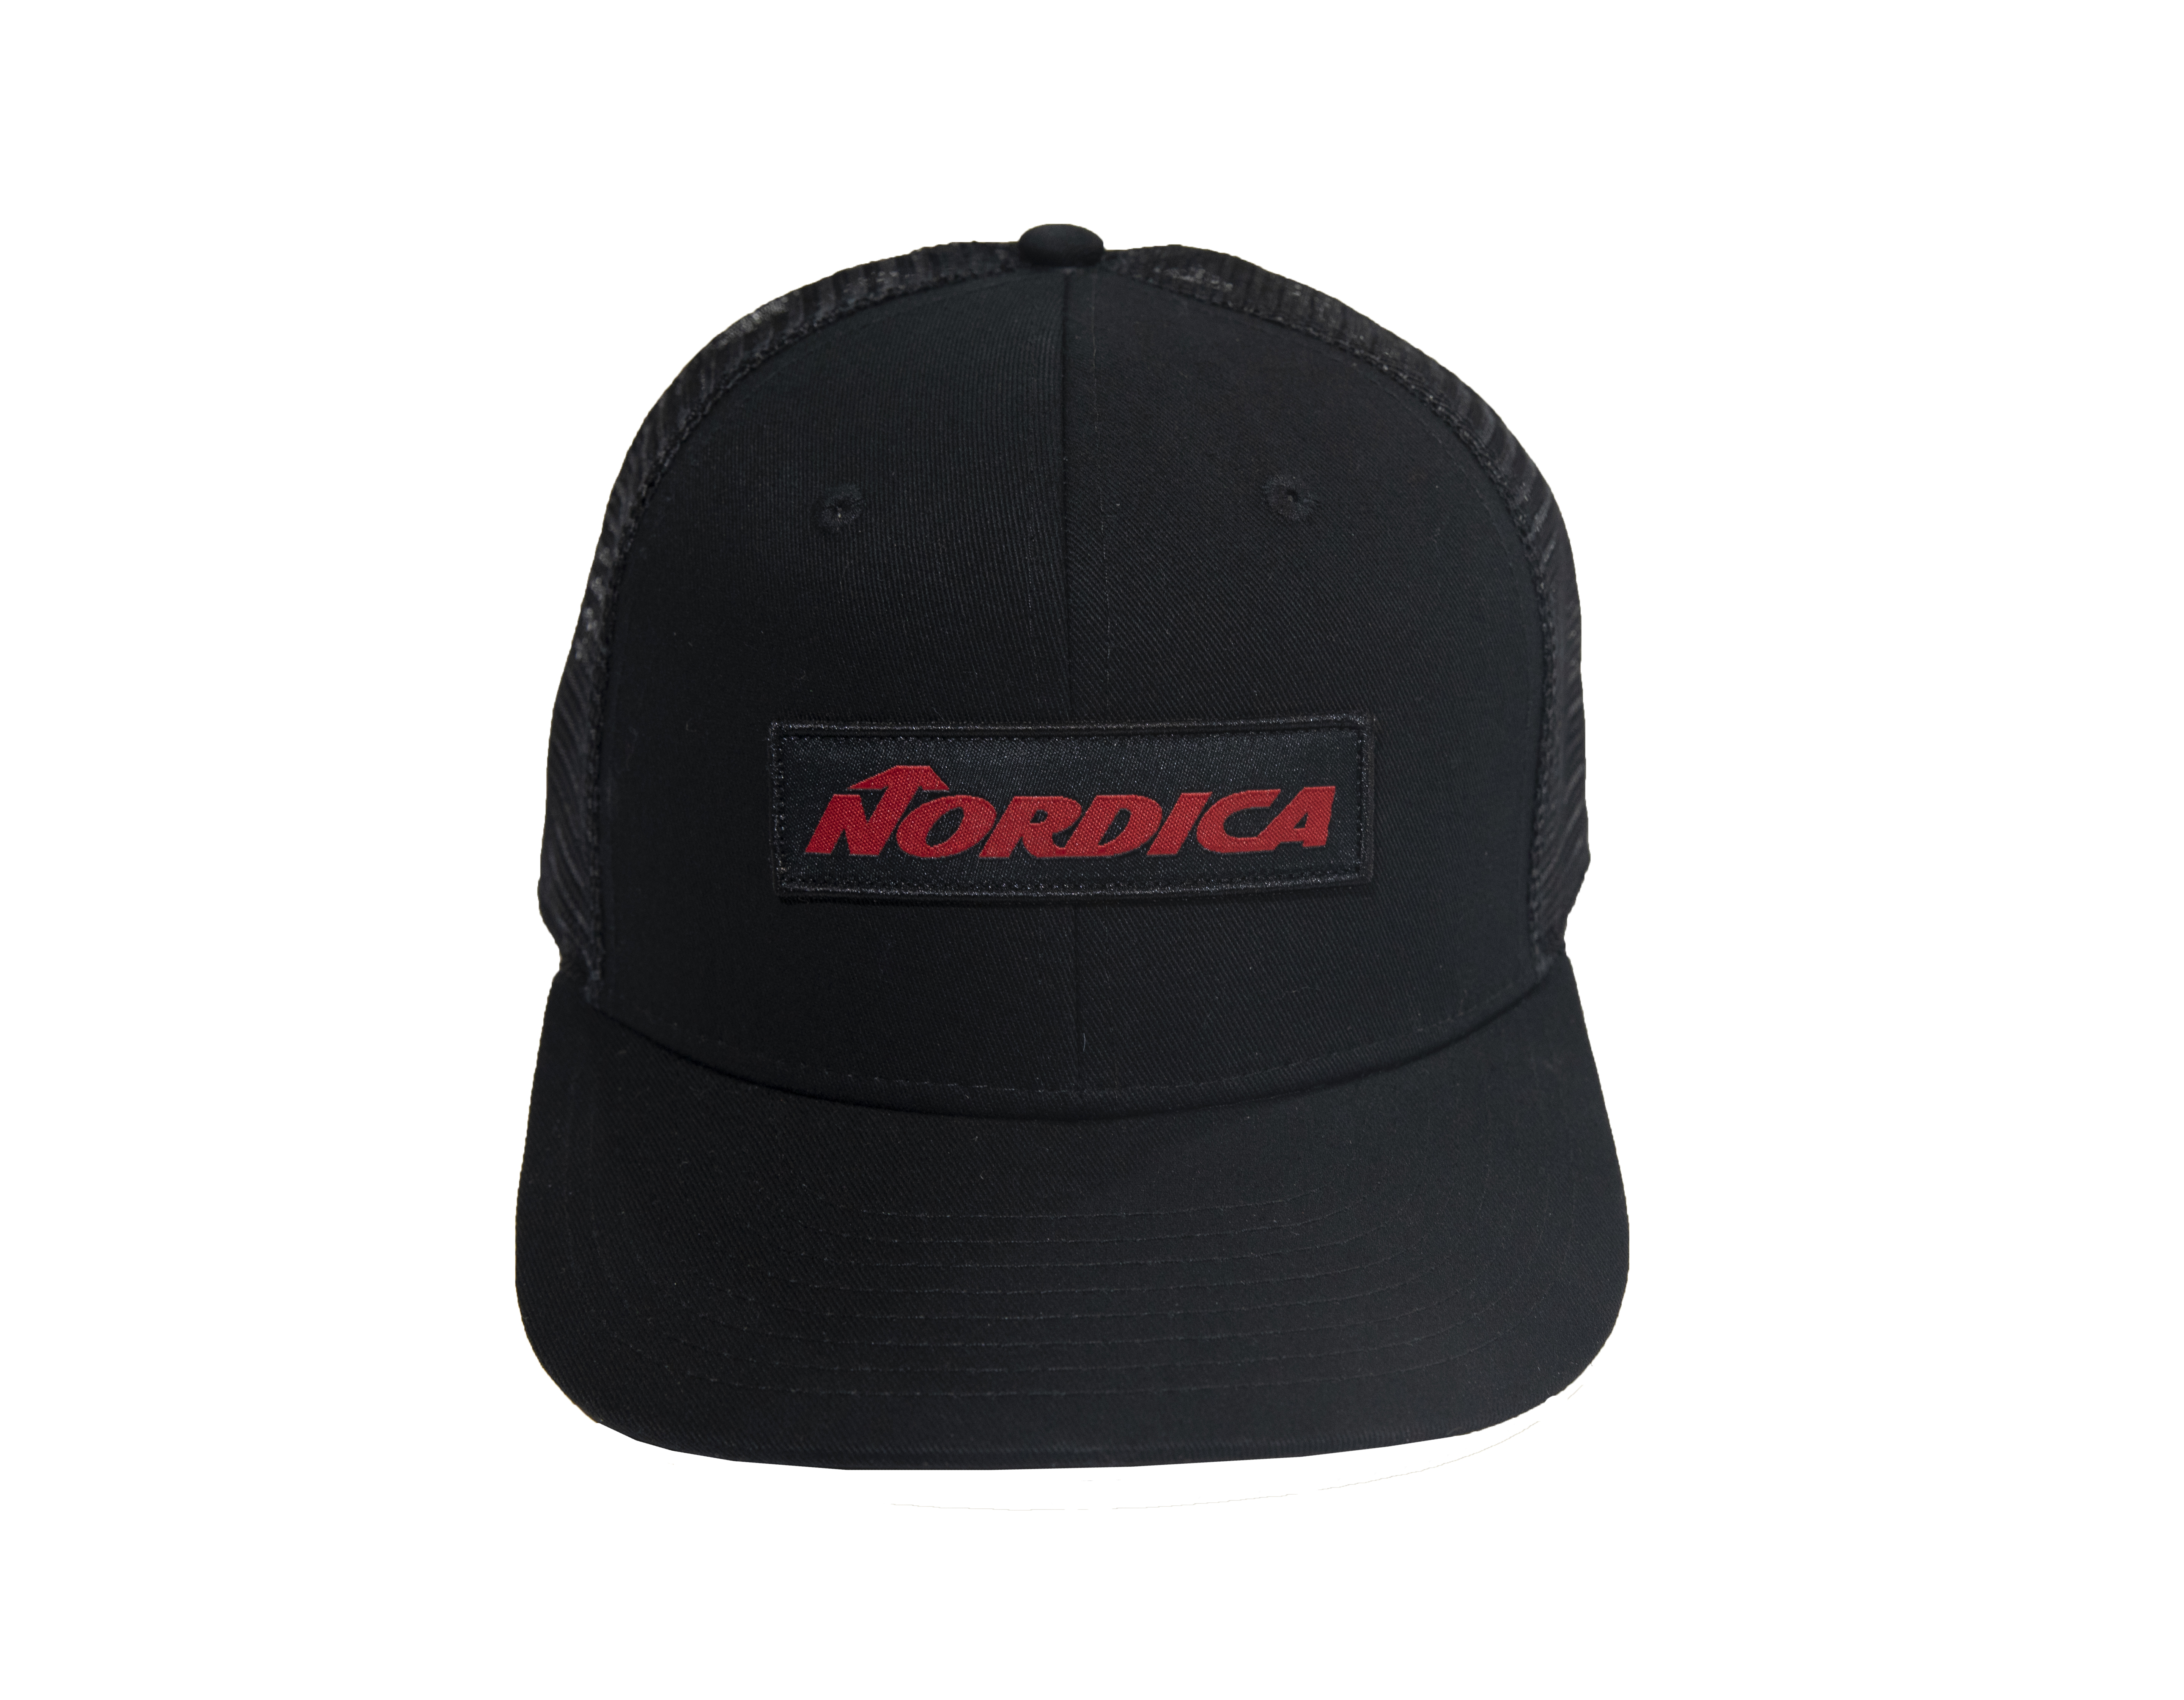 THE CLASSIC PATCH HAT